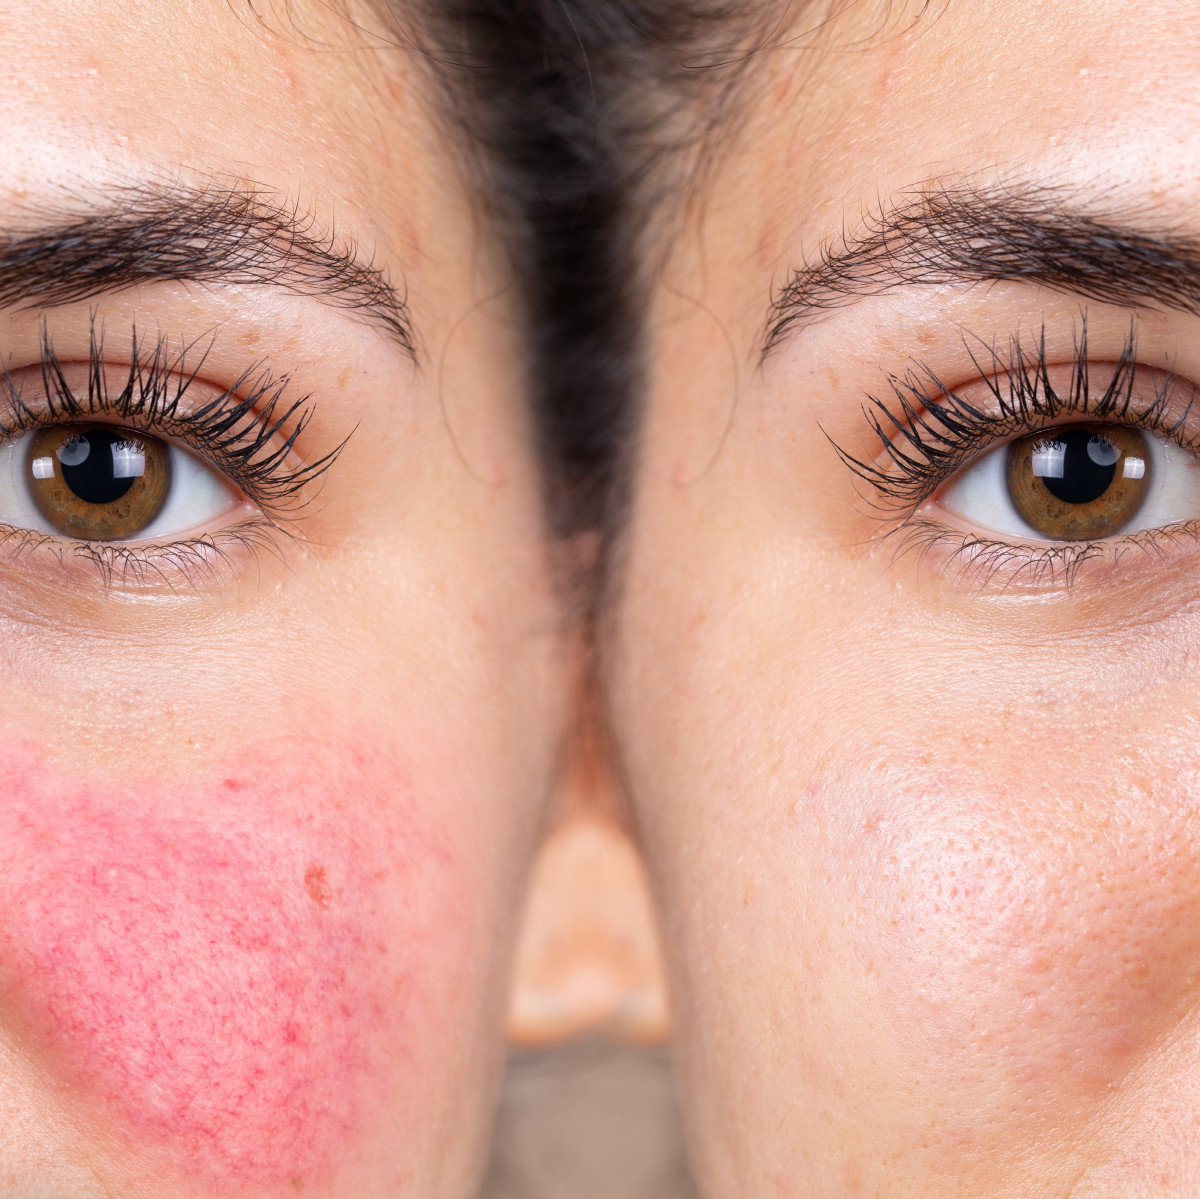 A helpful guide on how to tackle rosacea nutritionally